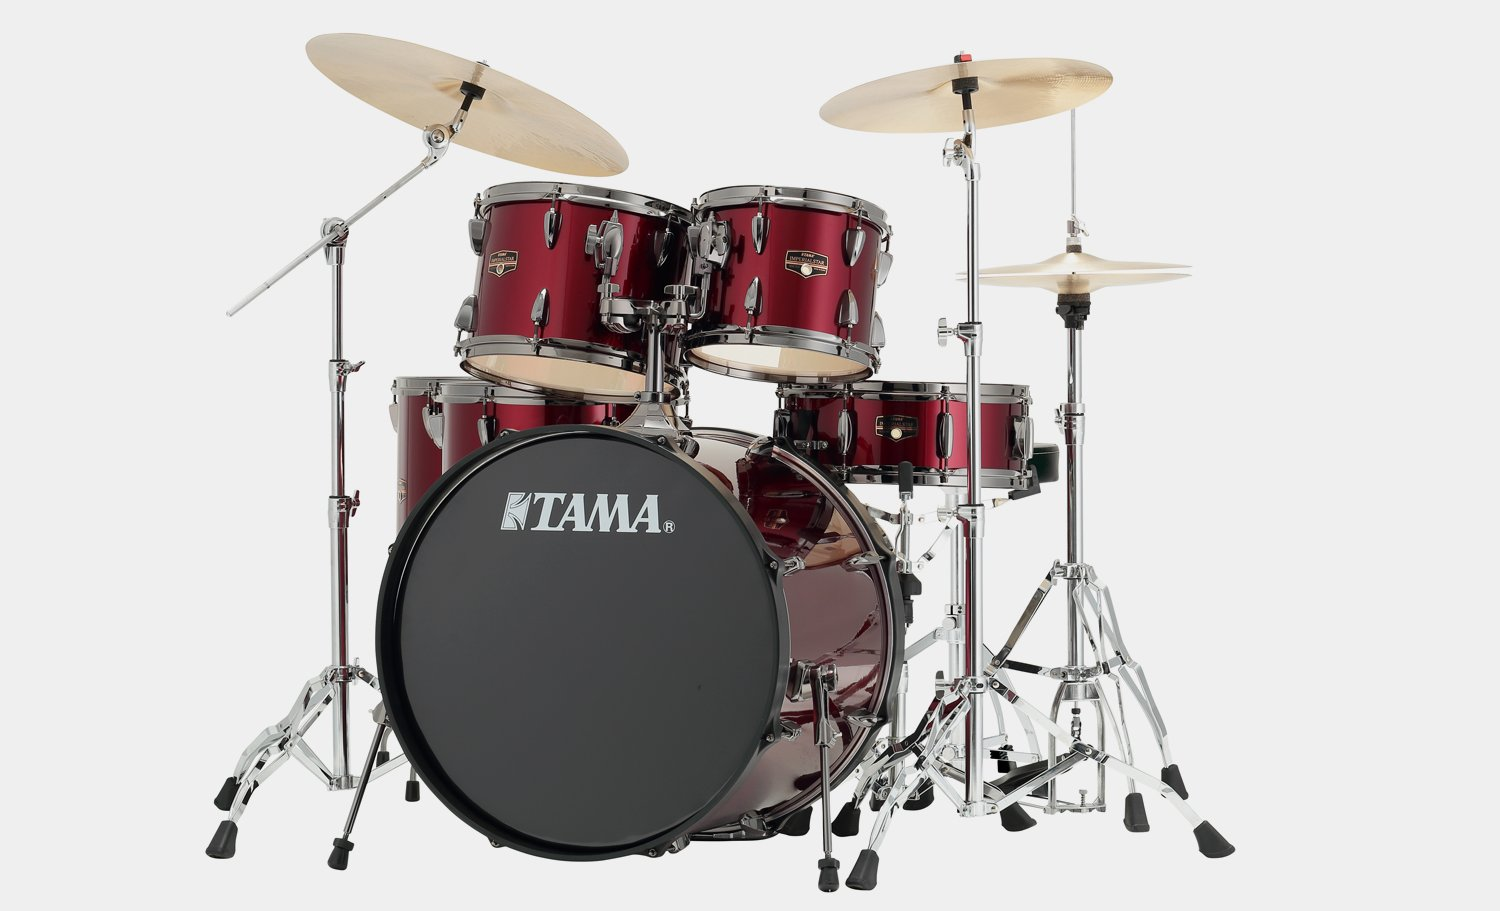 Tama Imperialstar 5-Piece Drum Set w/ Hardware and Cymbals - Vintage Red